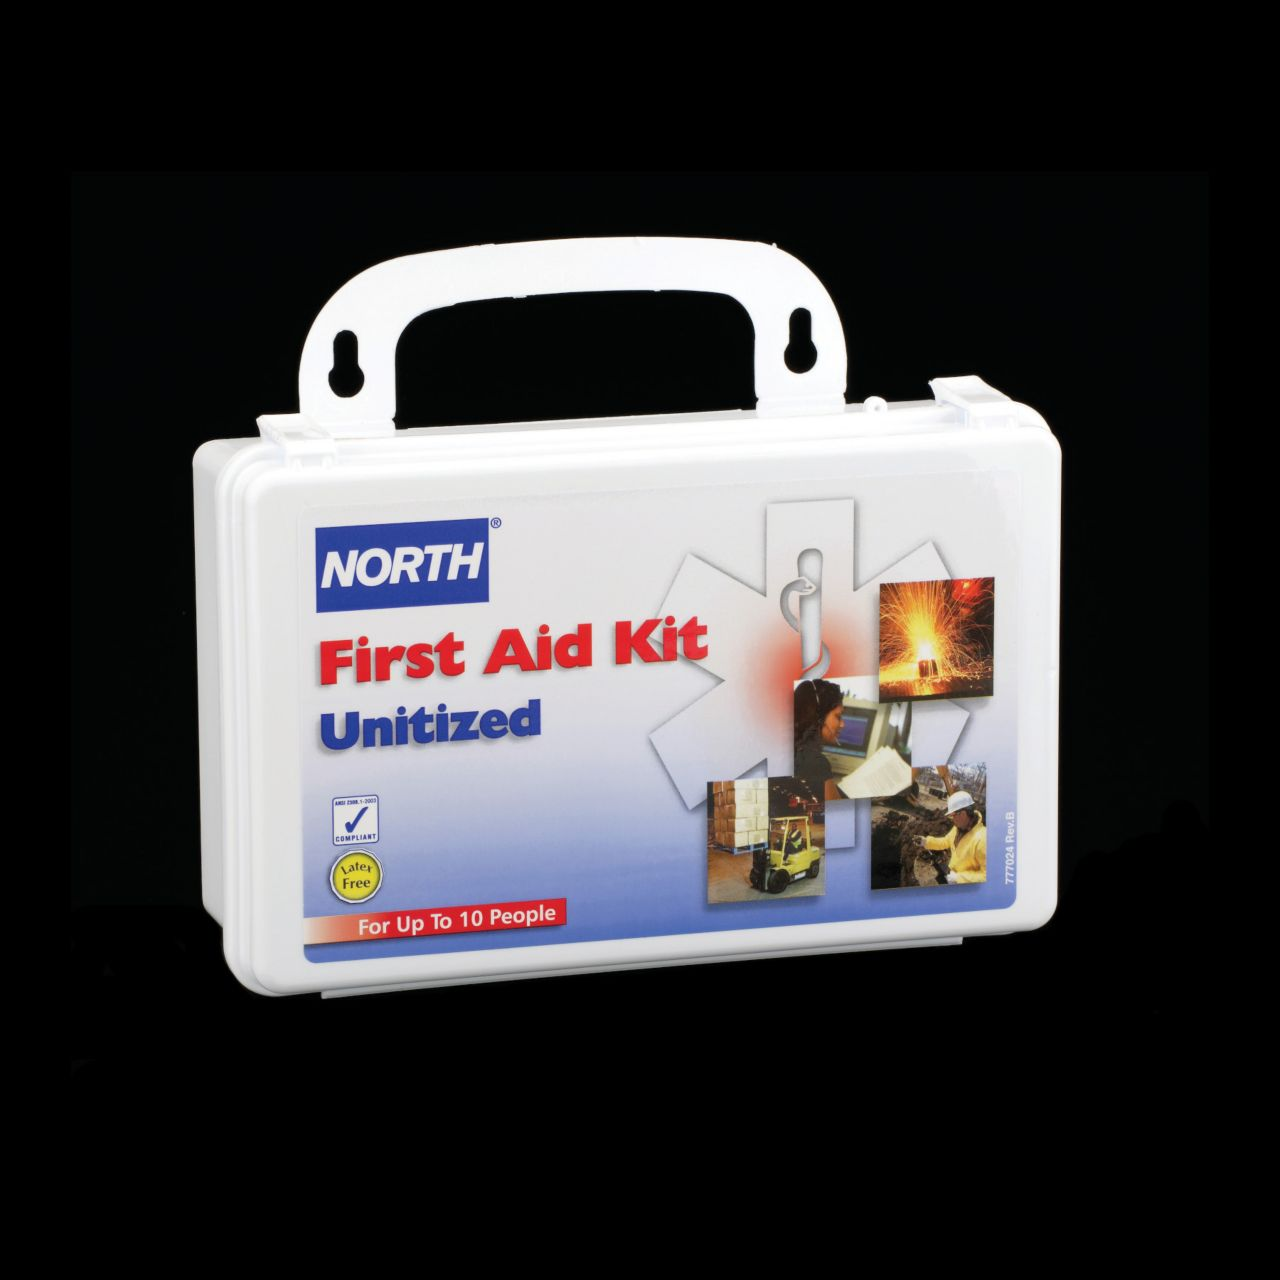 HS_019708-0005l_-_unitized_first_aid_kit,_10_unit,_plastic_north_019708